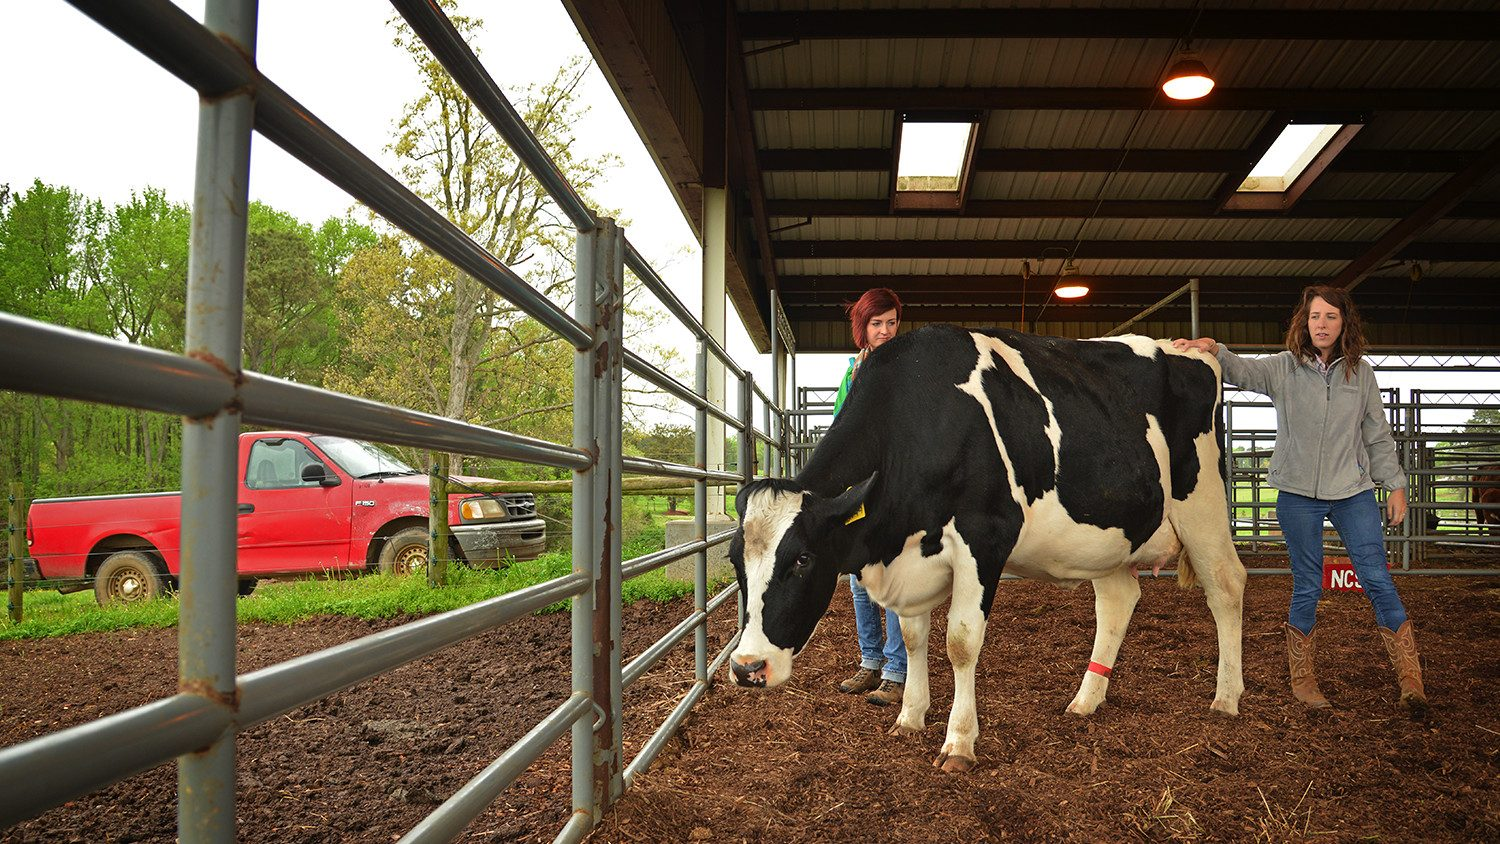 Students tending to a cow in a barn.